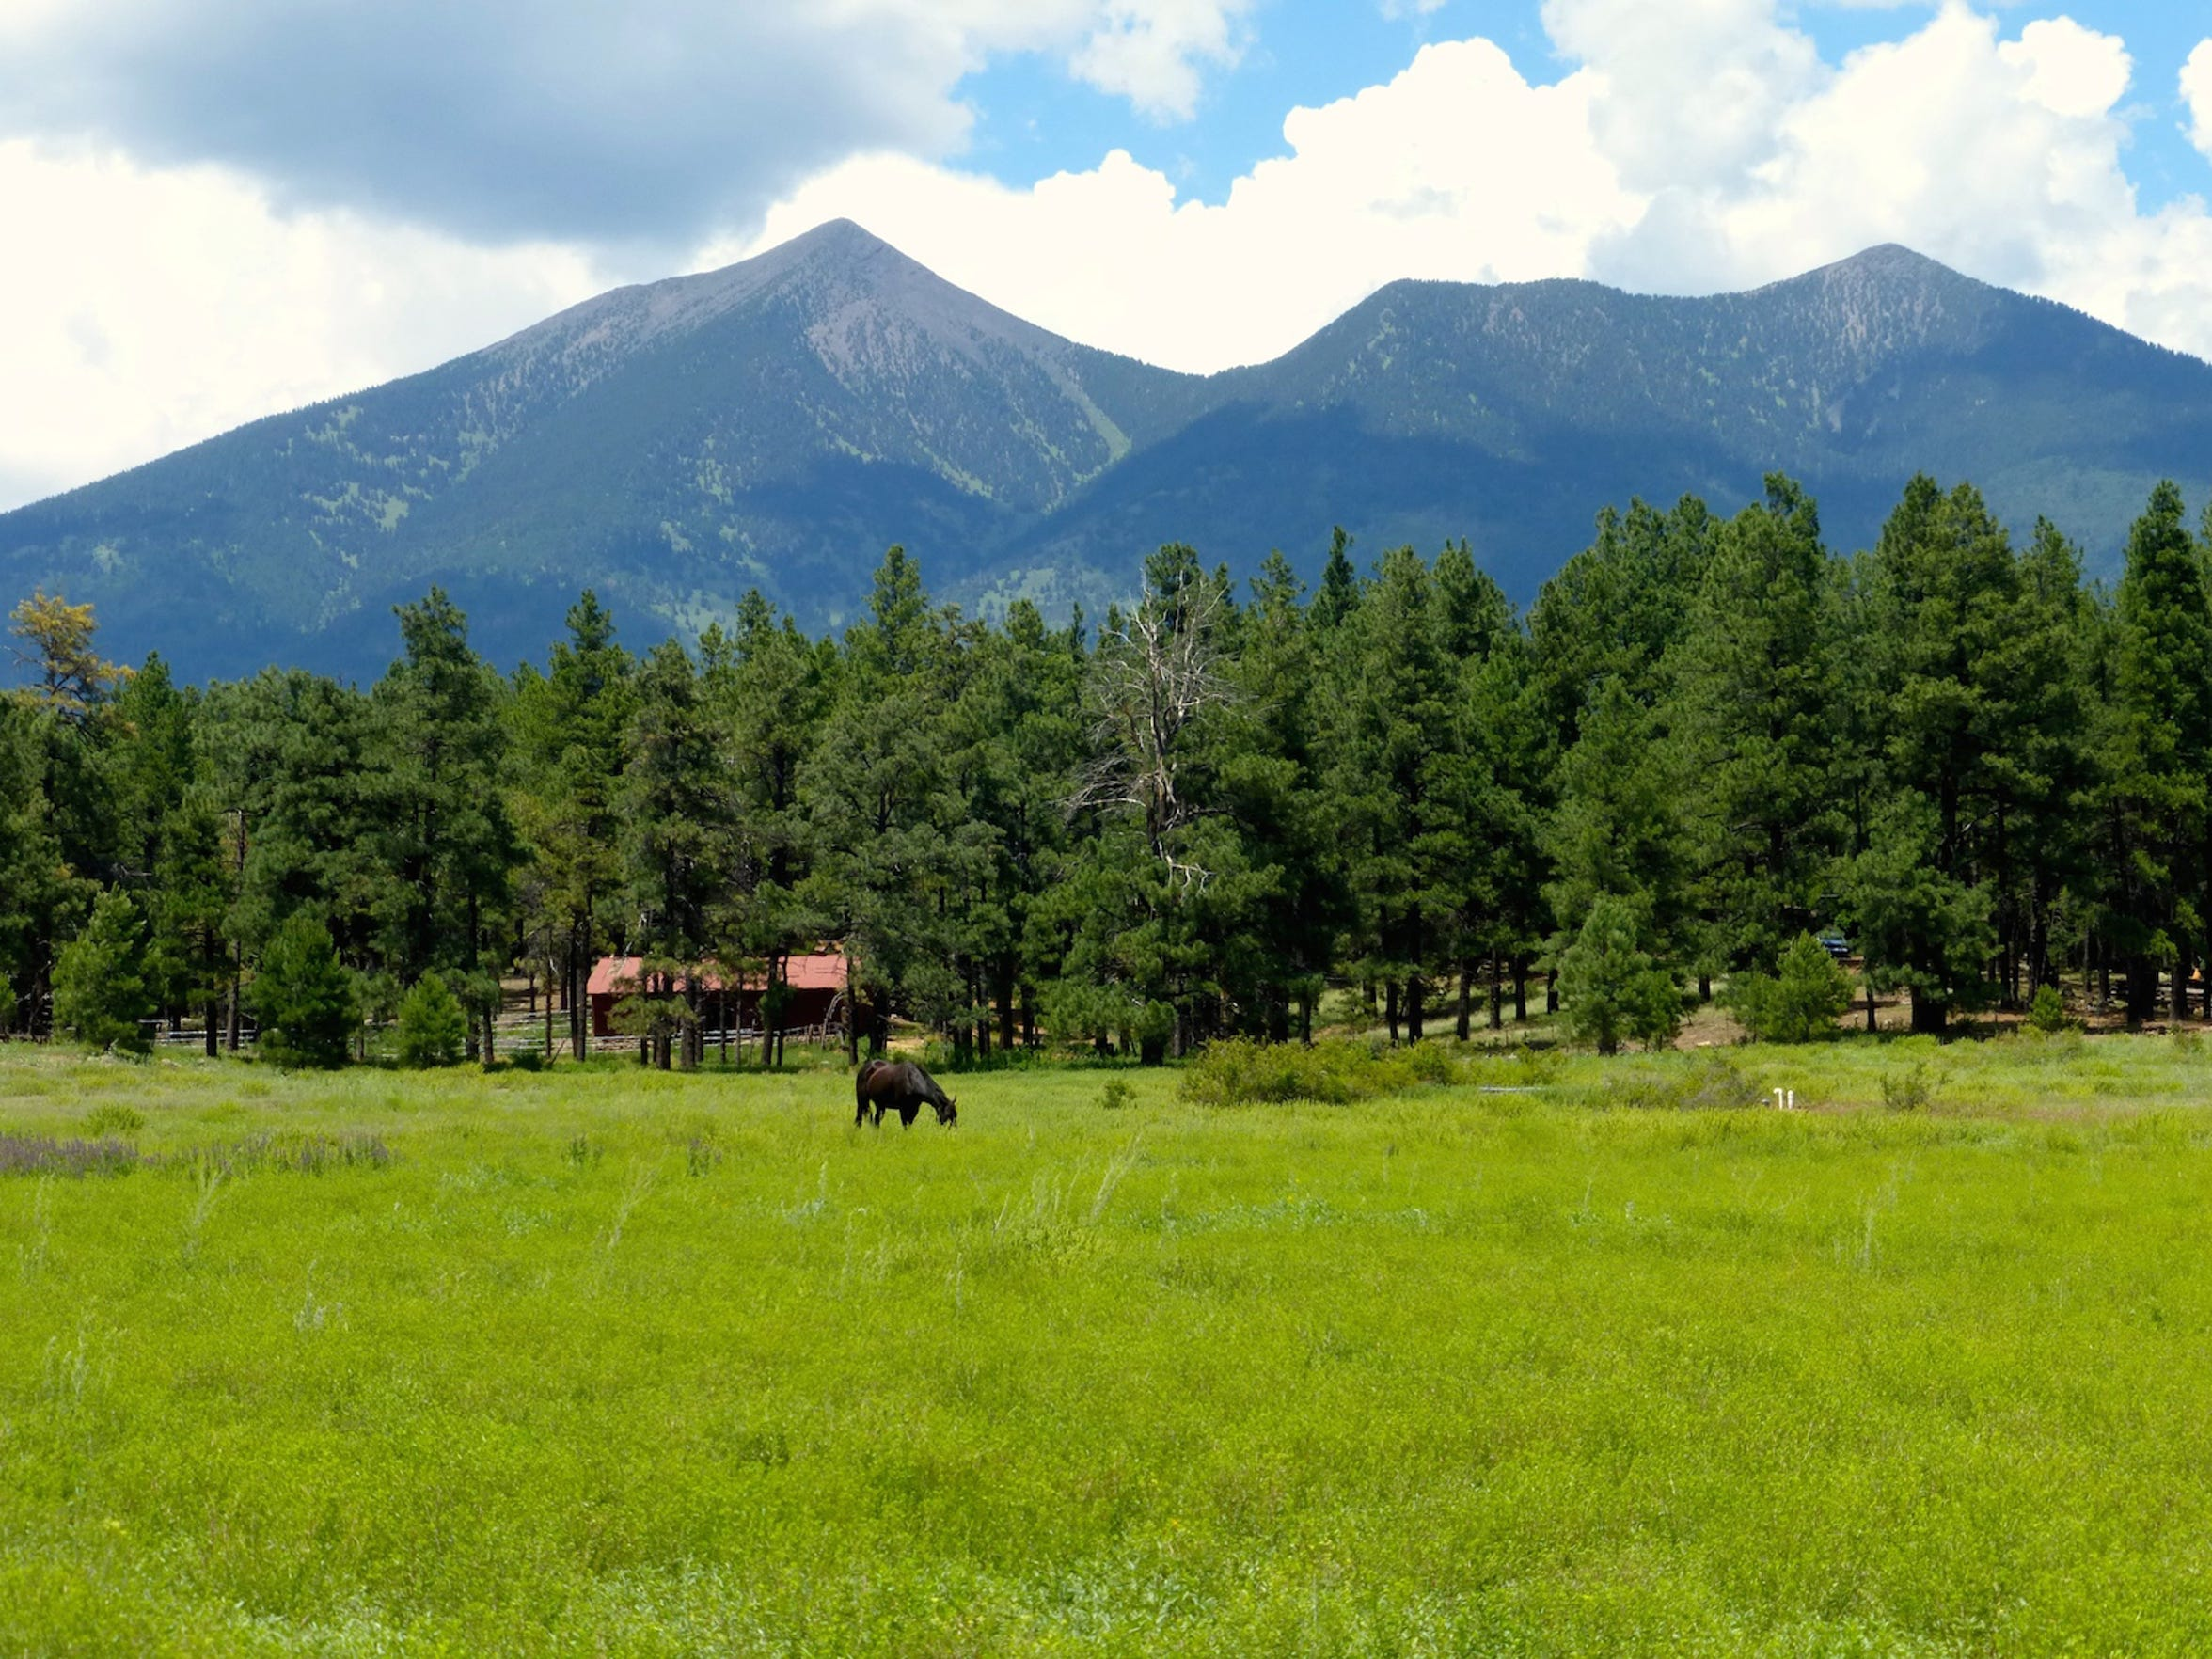 The San Francisco Peaks are the hulking remains of